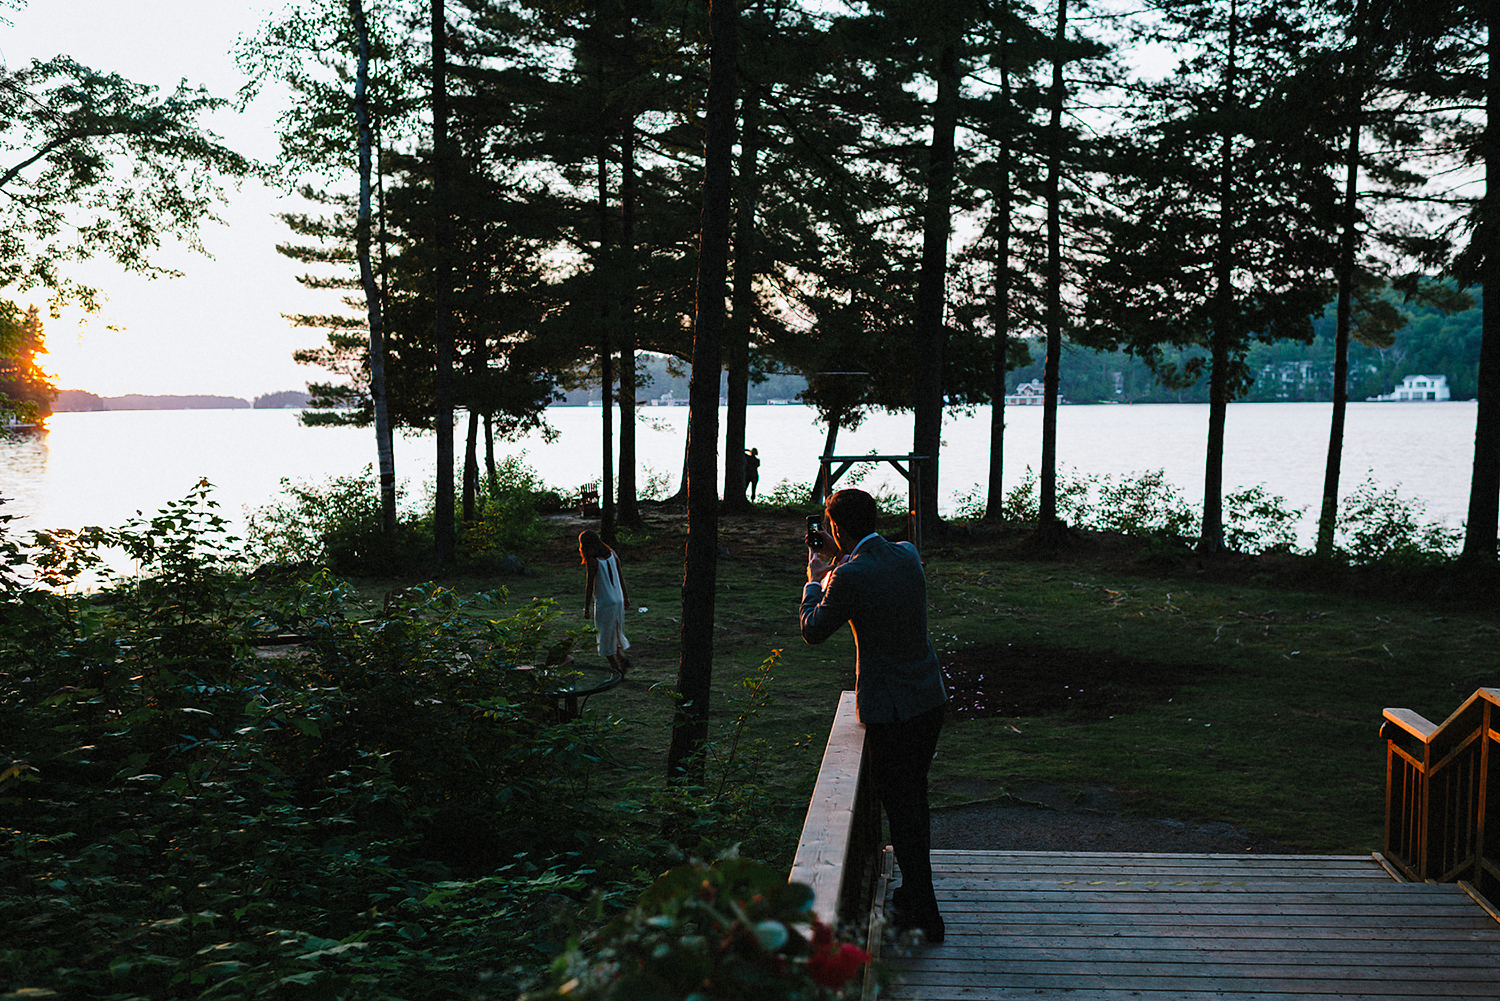 Muskoka-Cottage-Wedding-Photography-Photographer_Photojournalistic-Documentary-Wedding-Photography_Lakeside-Ceremony-Sunset-Light-guests.jpg